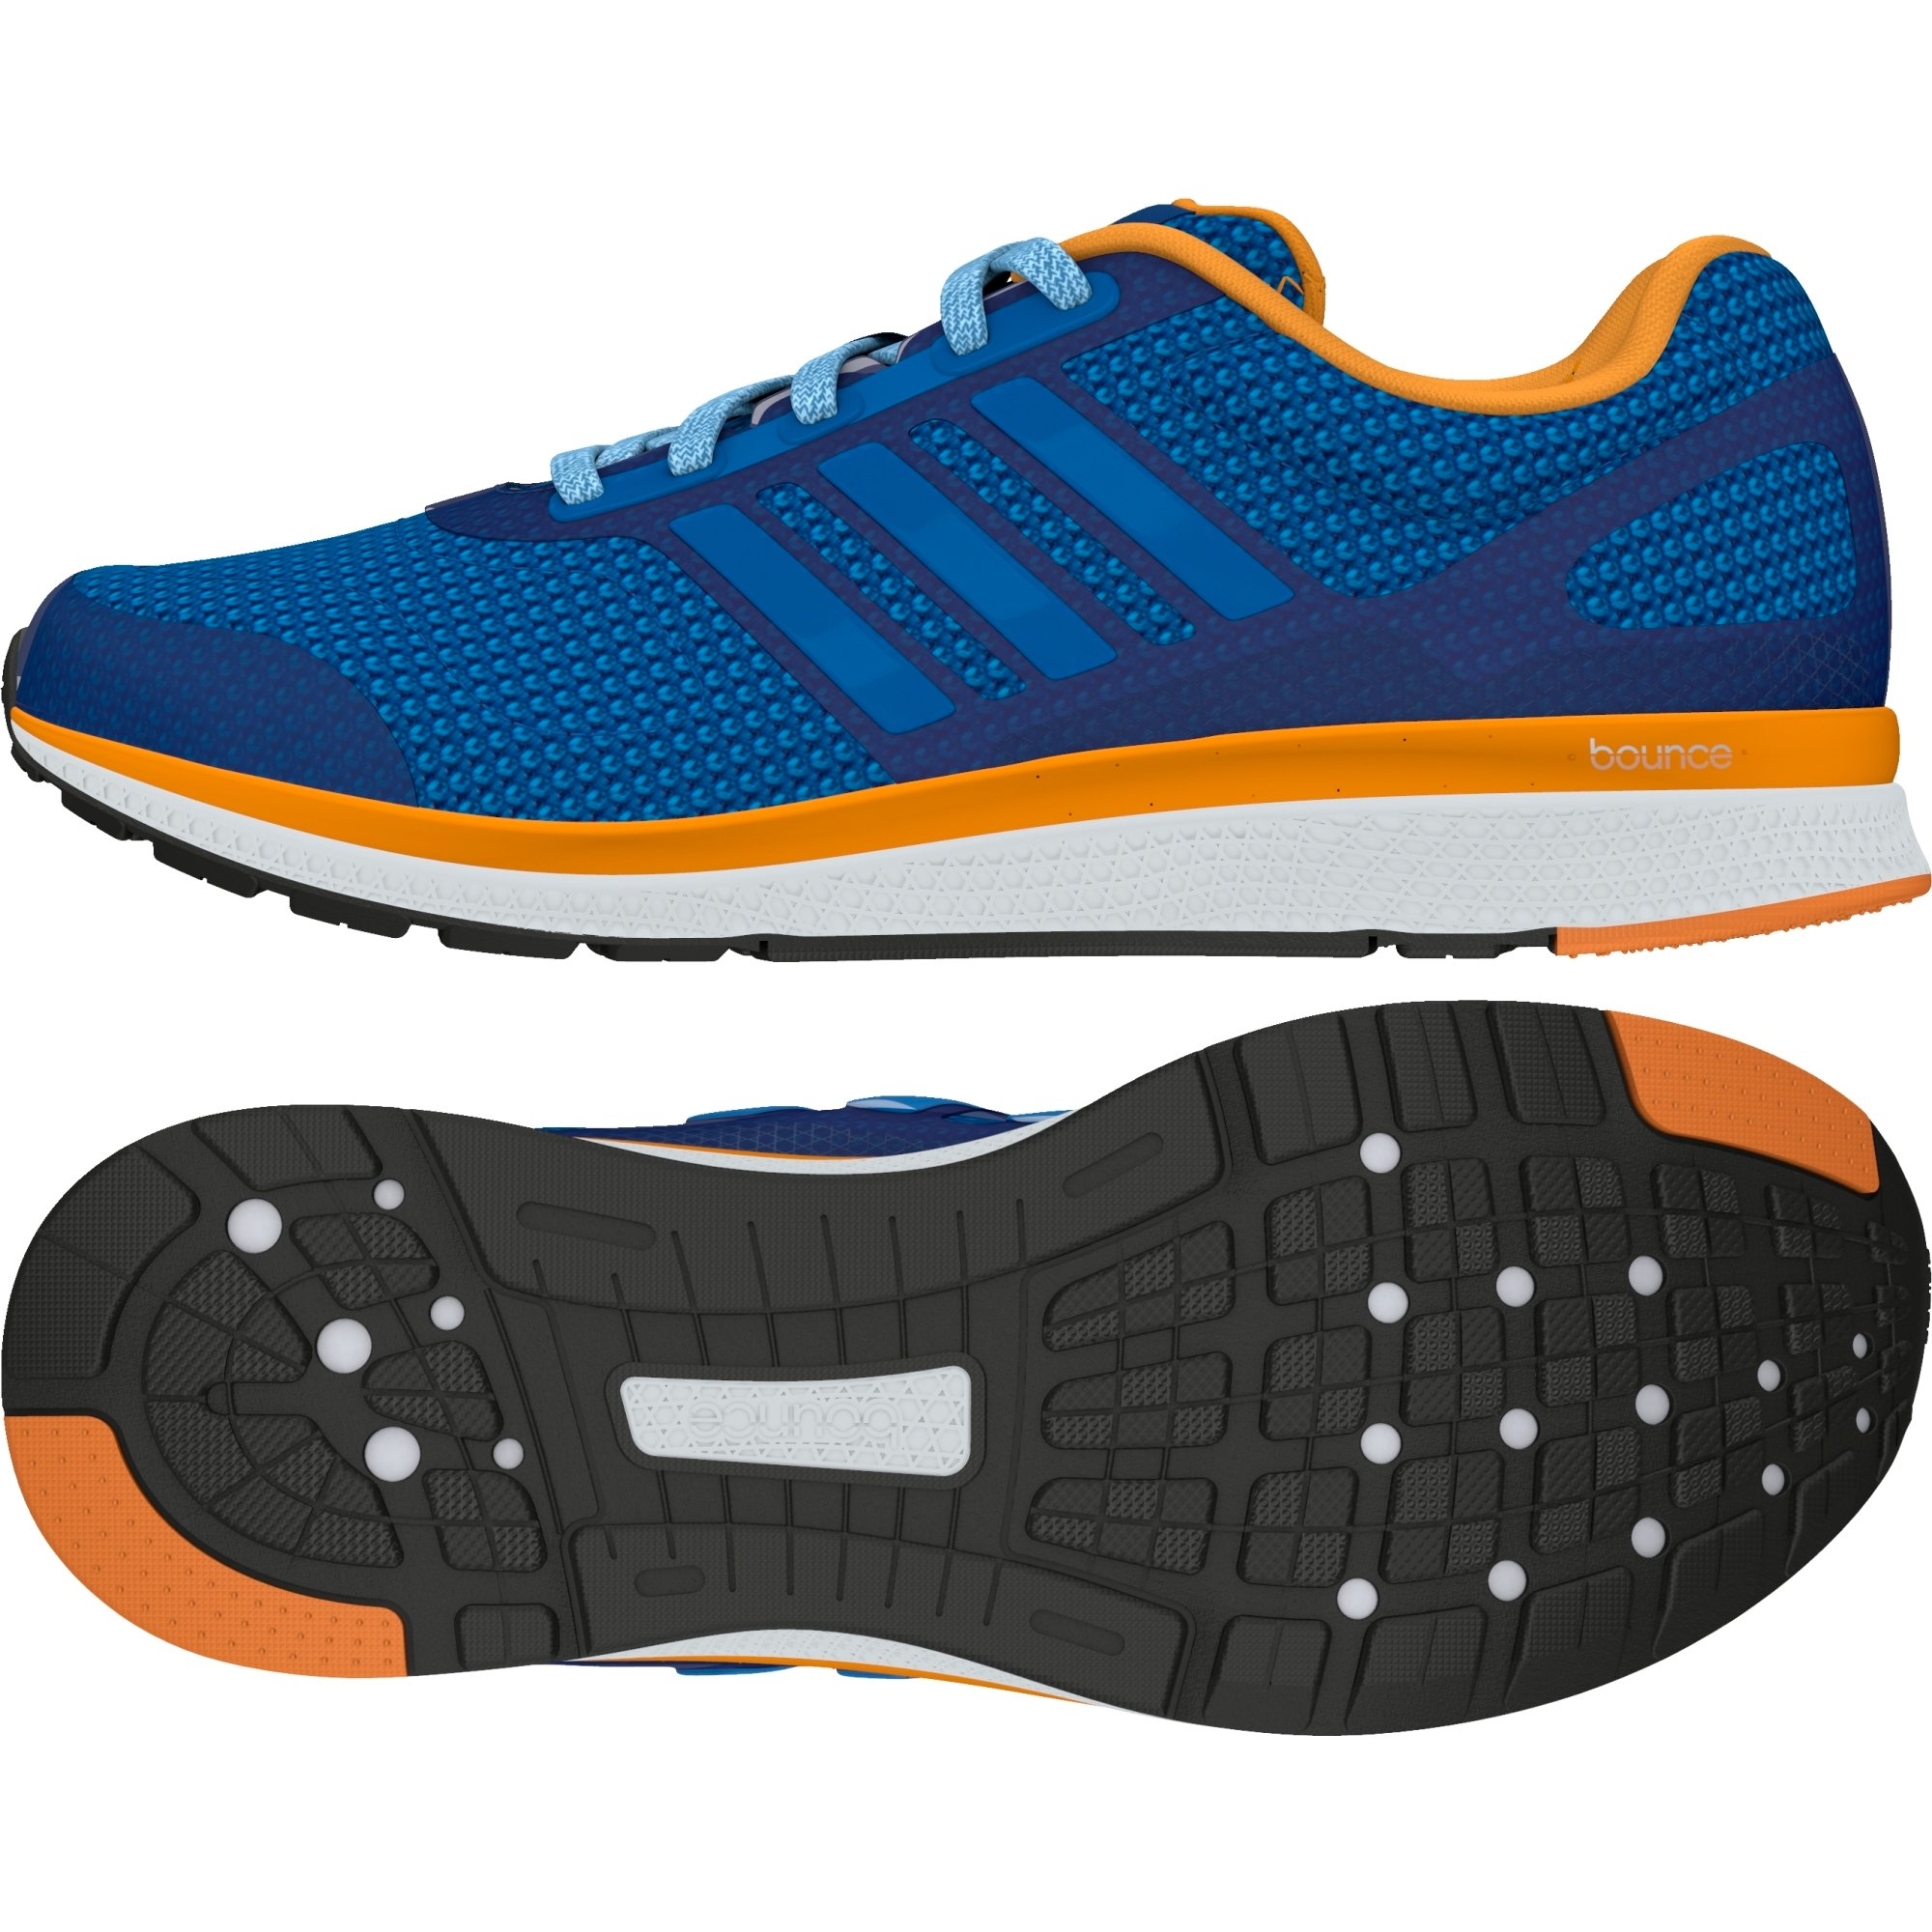 62aa14943f3d2 BUTY ADIDAS MANA BOUNCE M AF4112 R. 46 7465687409 - Allegro.pl